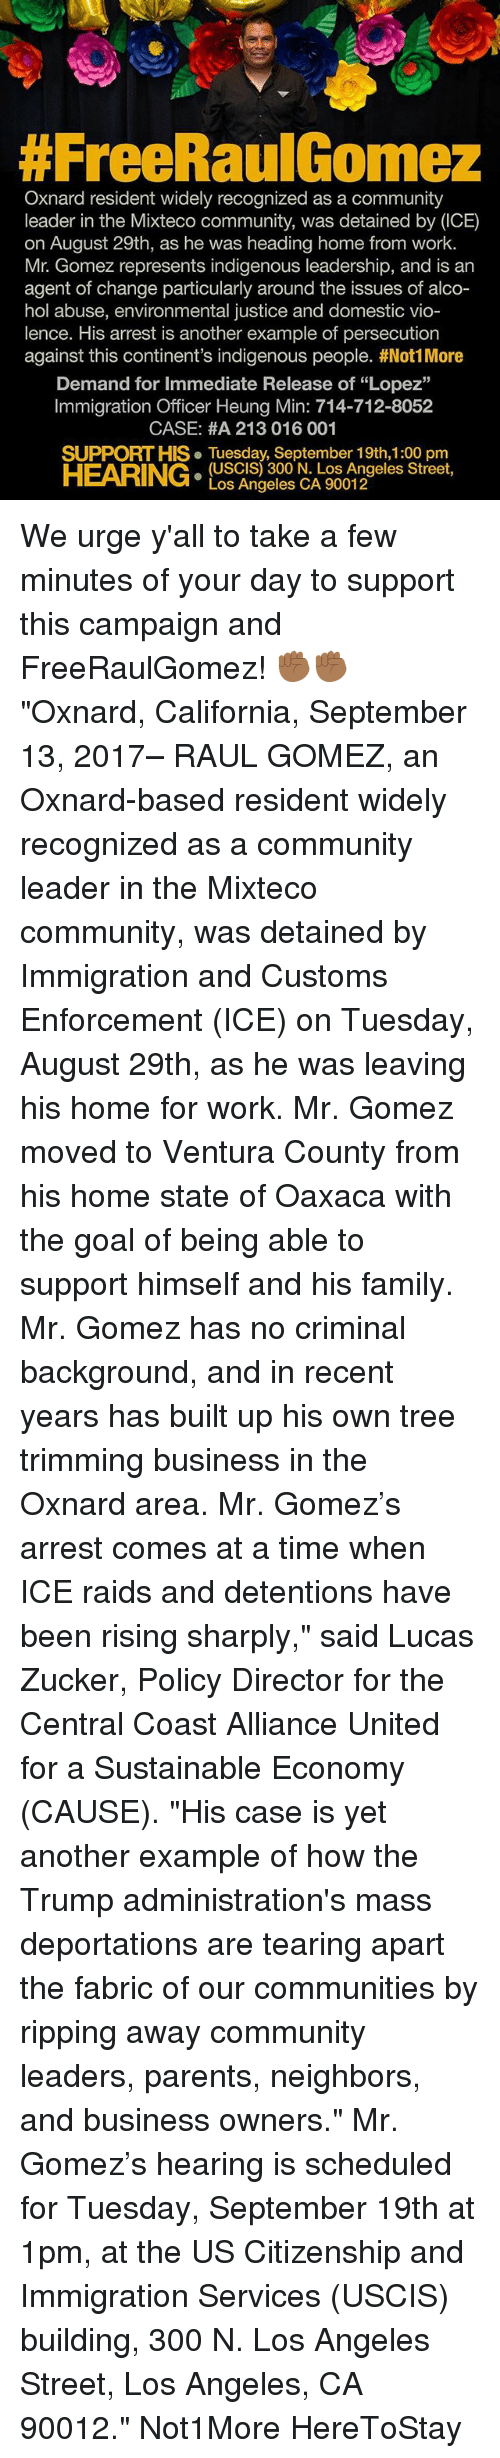 """vio:  #FreeRaulGomez  Oxnard resident widely recognized as a community  leader in the Mixteco community, was detained by (ICE)  on August 29th, as he was heading home from work.  Mr. Gomez represents indigenous leadership, and is an  agent of change particularly around the issues of alco-  hol abuse, environmental justice and domestic vio-  lence. His arrest is another example of persecution  against this continent's indigenous people. #Not! More  Demand for Immediate Release of """"Lopez""""  Immigration Officer Heung Min: 714-712-8052  CASE: #A 213 016 001  SUPPORT HIS. Tuesday, September 19th,1:00 pm  HEARING:  (USCIS) 300 N. Los Angeles Street,  Los Angeles CA 90012 We urge y'all to take a few minutes of your day to support this campaign and FreeRaulGomez! ✊🏾✊🏾 """"Oxnard, California, September 13, 2017– RAUL GOMEZ, an Oxnard-based resident widely recognized as a community leader in the Mixteco community, was detained by Immigration and Customs Enforcement (ICE) on Tuesday, August 29th, as he was leaving his home for work. Mr. Gomez moved to Ventura County from his home state of Oaxaca with the goal of being able to support himself and his family. Mr. Gomez has no criminal background, and in recent years has built up his own tree trimming business in the Oxnard area. Mr. Gomez's arrest comes at a time when ICE raids and detentions have been rising sharply,"""" said Lucas Zucker, Policy Director for the Central Coast Alliance United for a Sustainable Economy (CAUSE). """"His case is yet another example of how the Trump administration's mass deportations are tearing apart the fabric of our communities by ripping away community leaders, parents, neighbors, and business owners."""" Mr. Gomez's hearing is scheduled for Tuesday, September 19th at 1pm, at the US Citizenship and Immigration Services (USCIS) building, 300 N. Los Angeles Street, Los Angeles, CA 90012."""" Not1More HereToStay"""